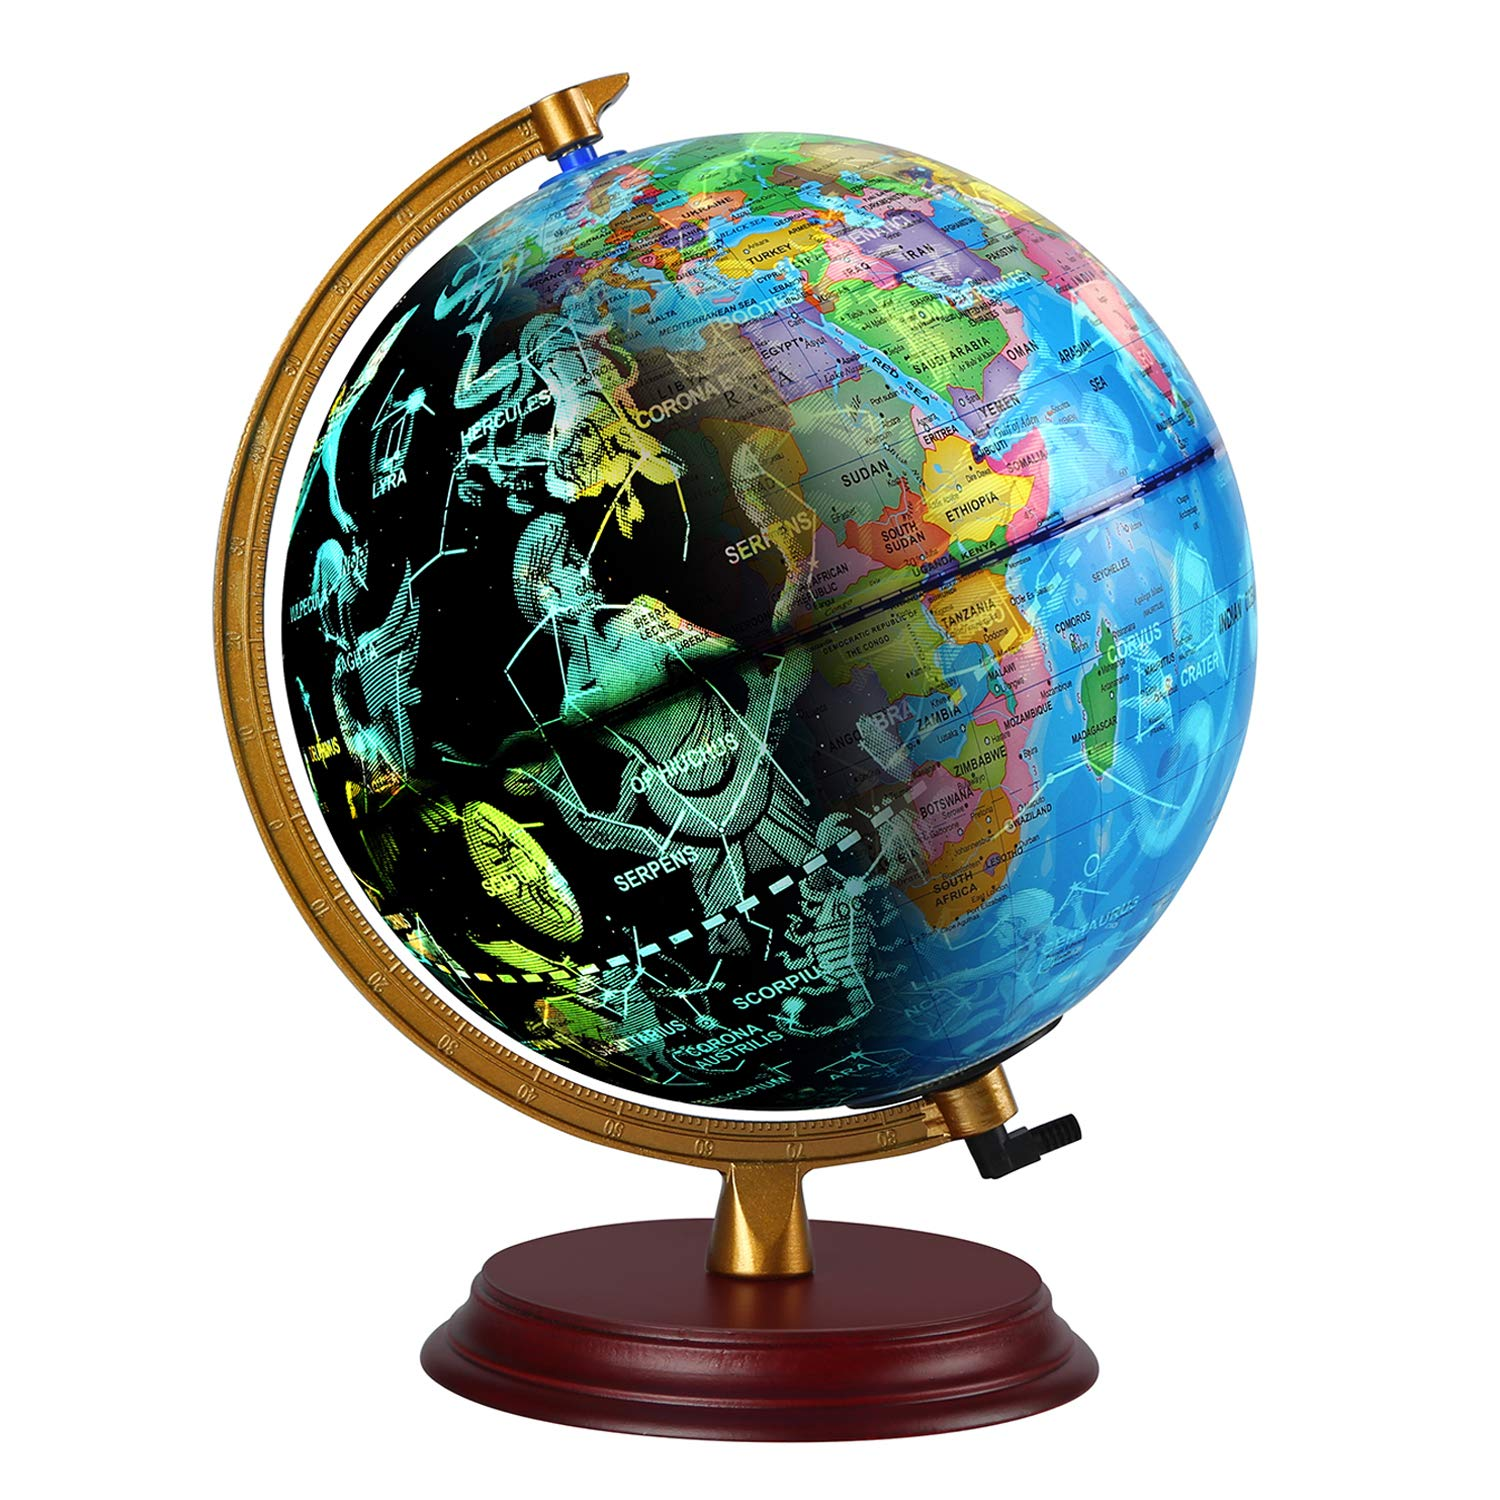 TTKTK Illuminated World Globe with Wooden Base - Night View Stars Constellation Pattern Globe with Detailed World Map,Built-in LED Bulb, No Battery Required, Educational Gift, Night Stand Decor by TTKTK